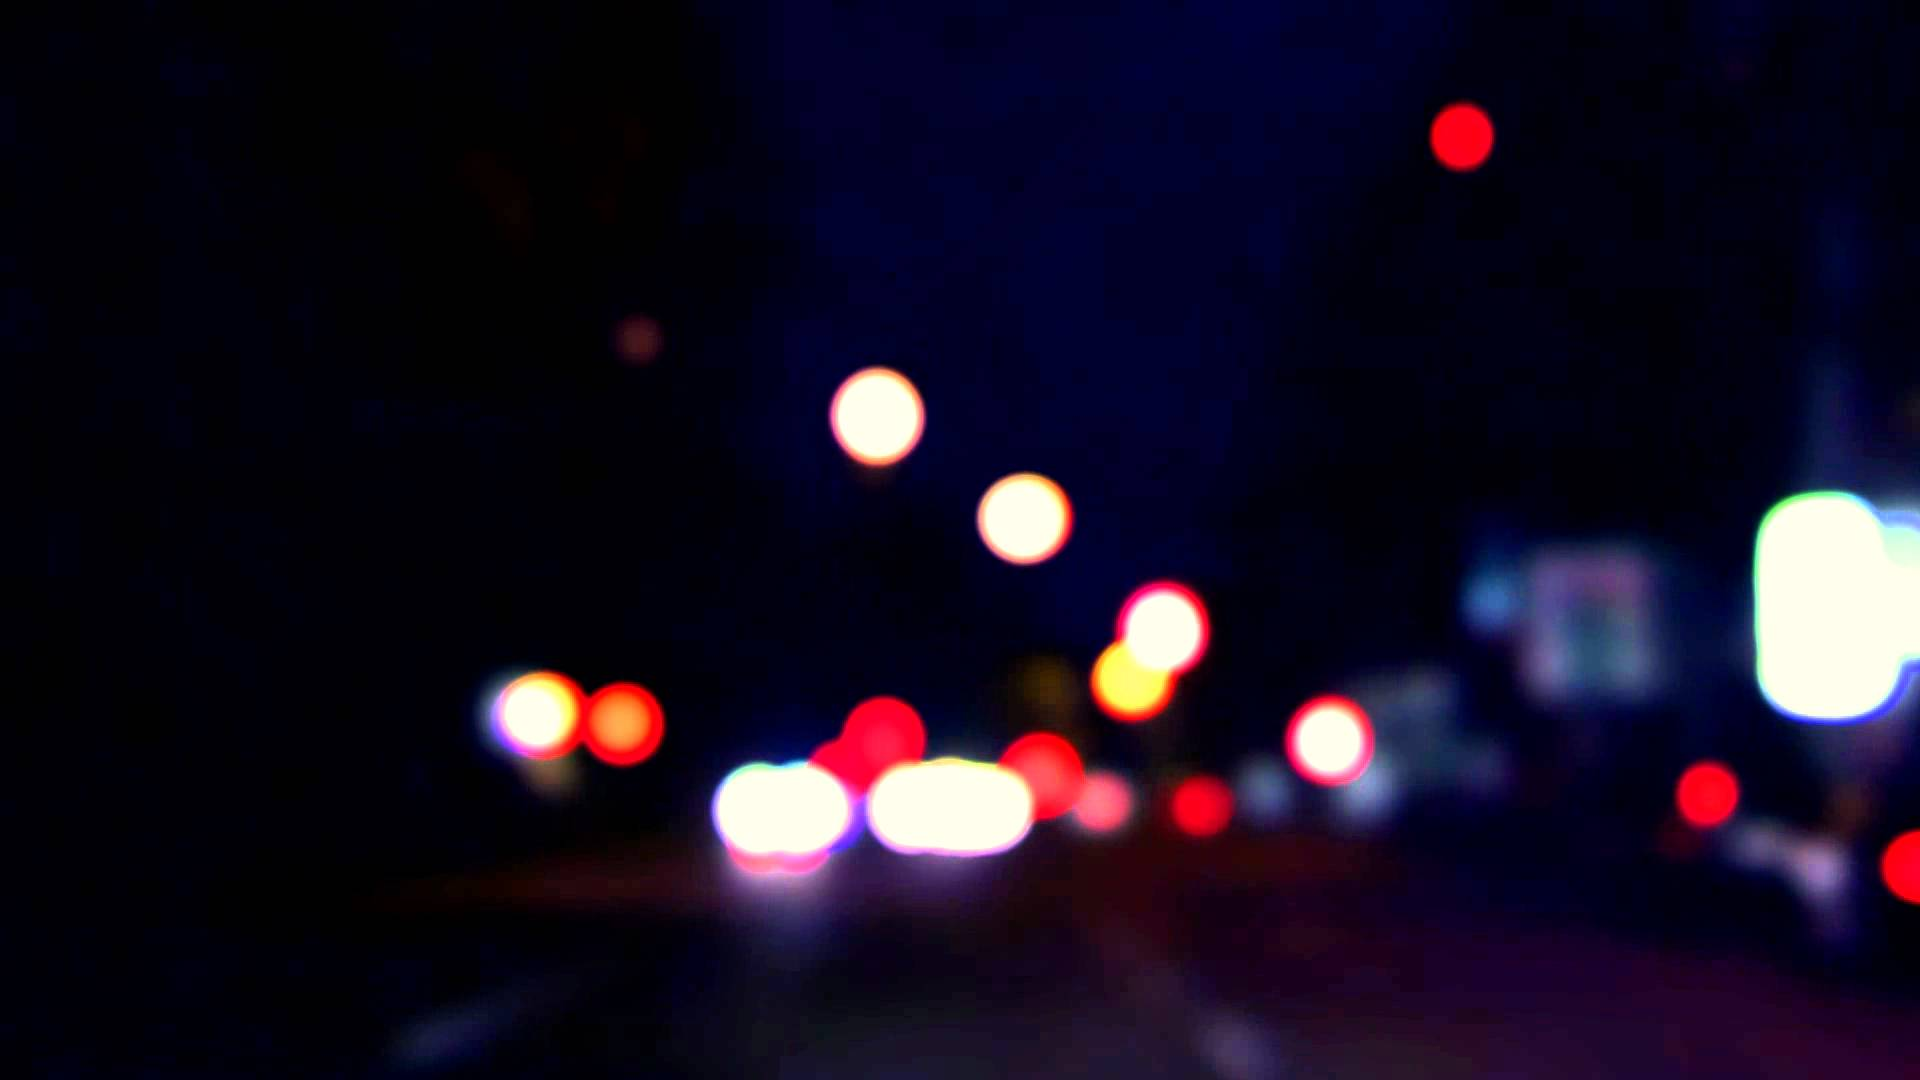 Action Cut Blurred Traffic & Lights Collection - Free Footage - Full ...